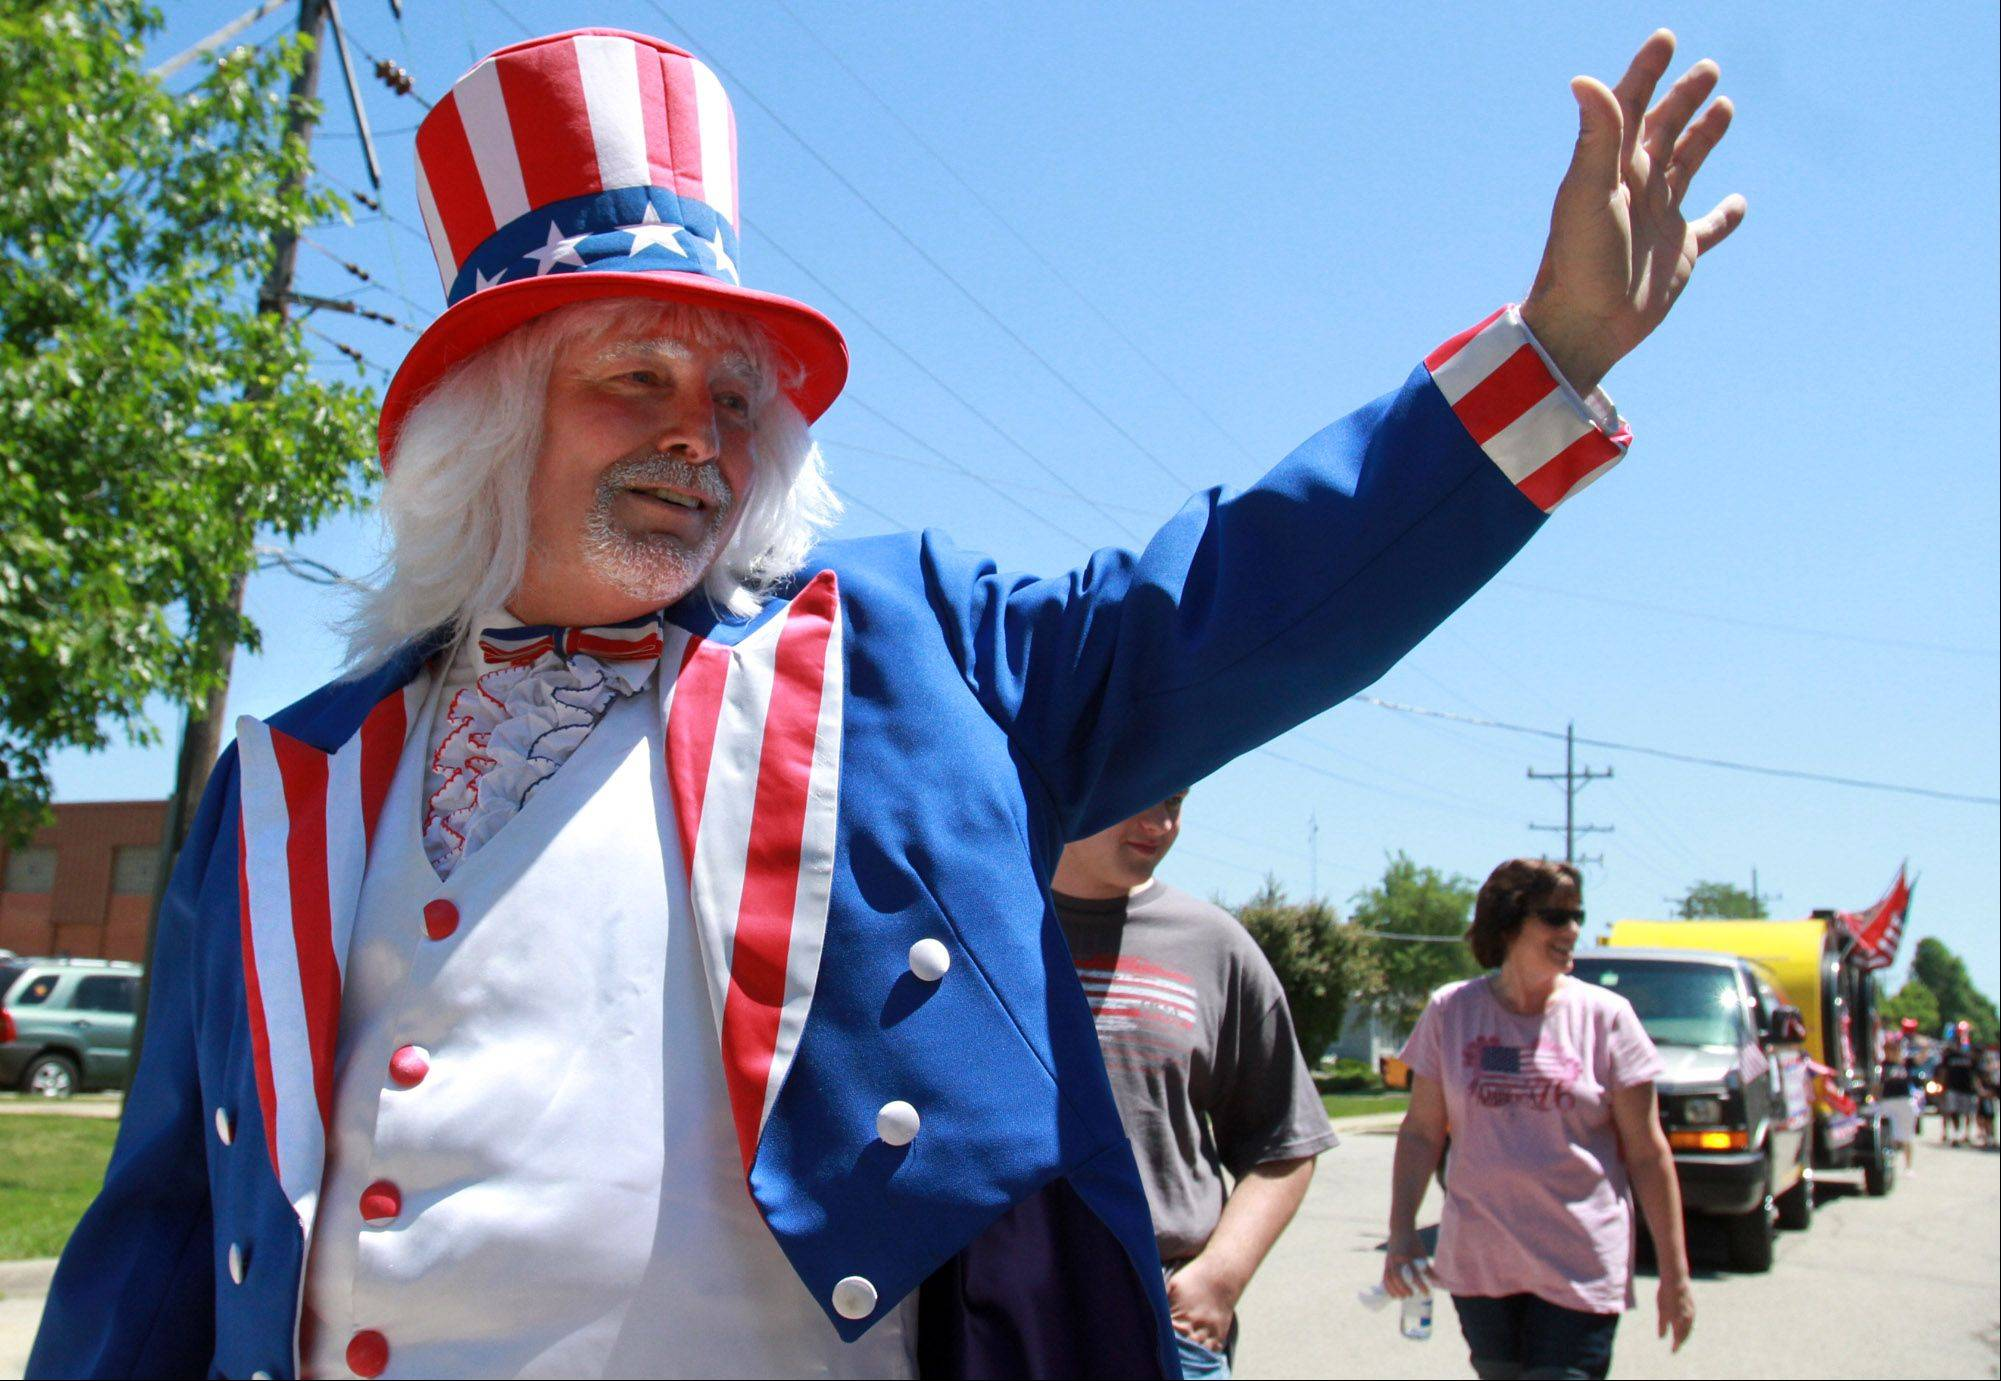 Joe Boshold, a manager at Northrop Grumman Corporation, marches in the Rolling Meadows Fourth of July parade Monday.